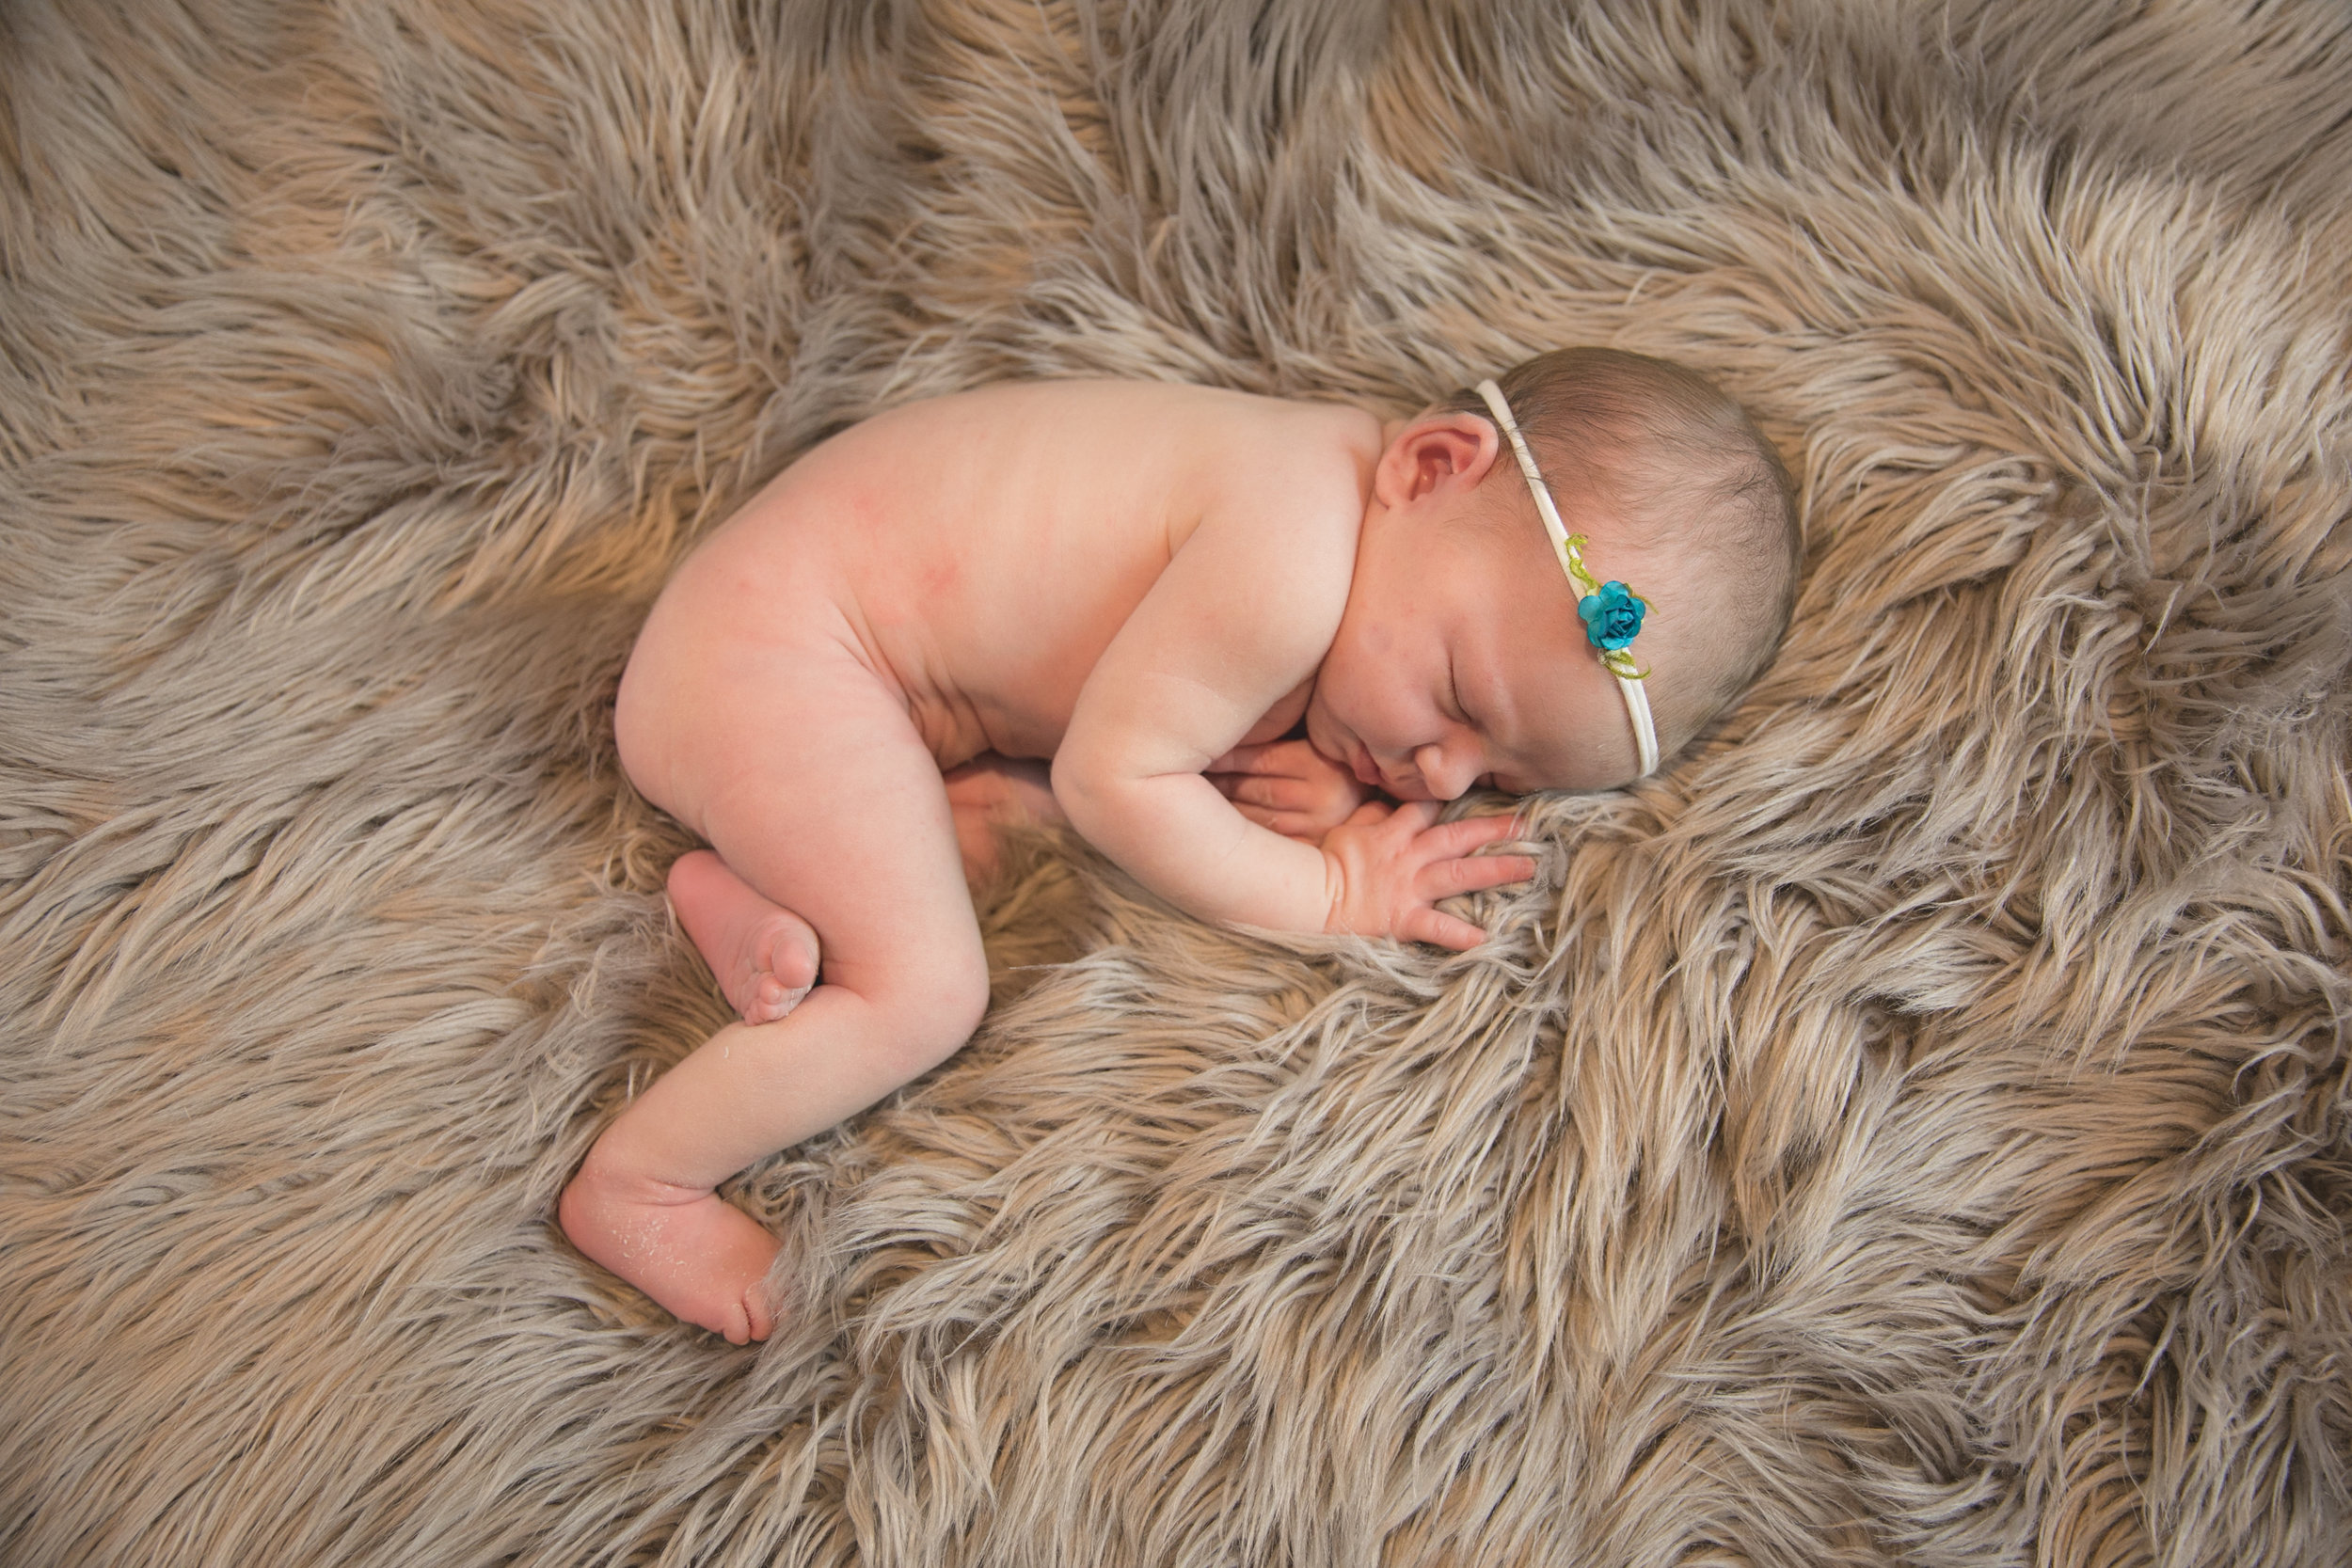 CrystalJessupPhotographyNewborn (18 of 29).jpg